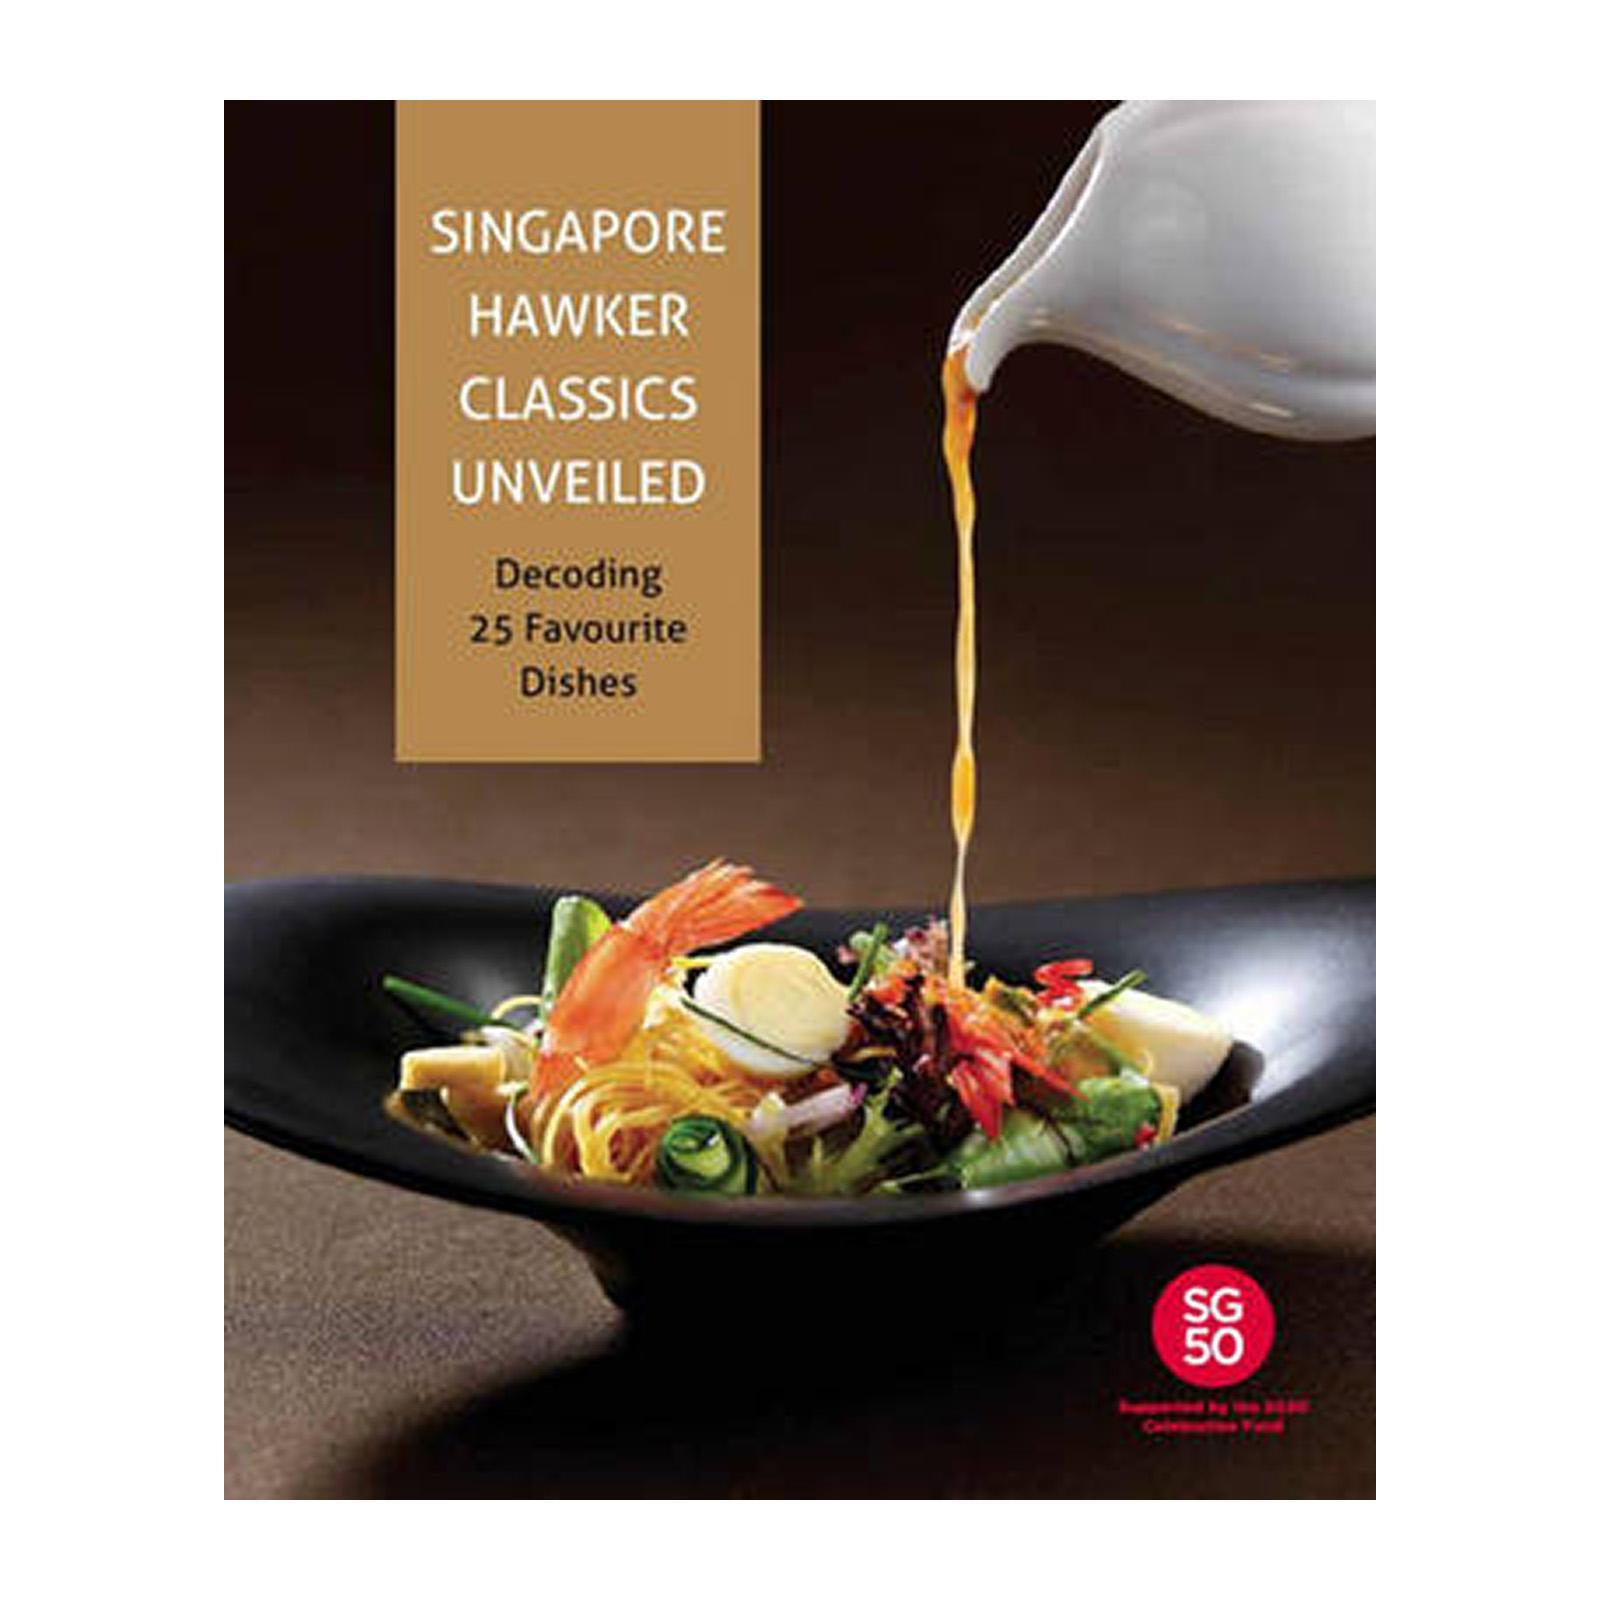 Singapore Hawker Classics Unveiled: Decoding 25 Favourite Dishes (Hardcover)